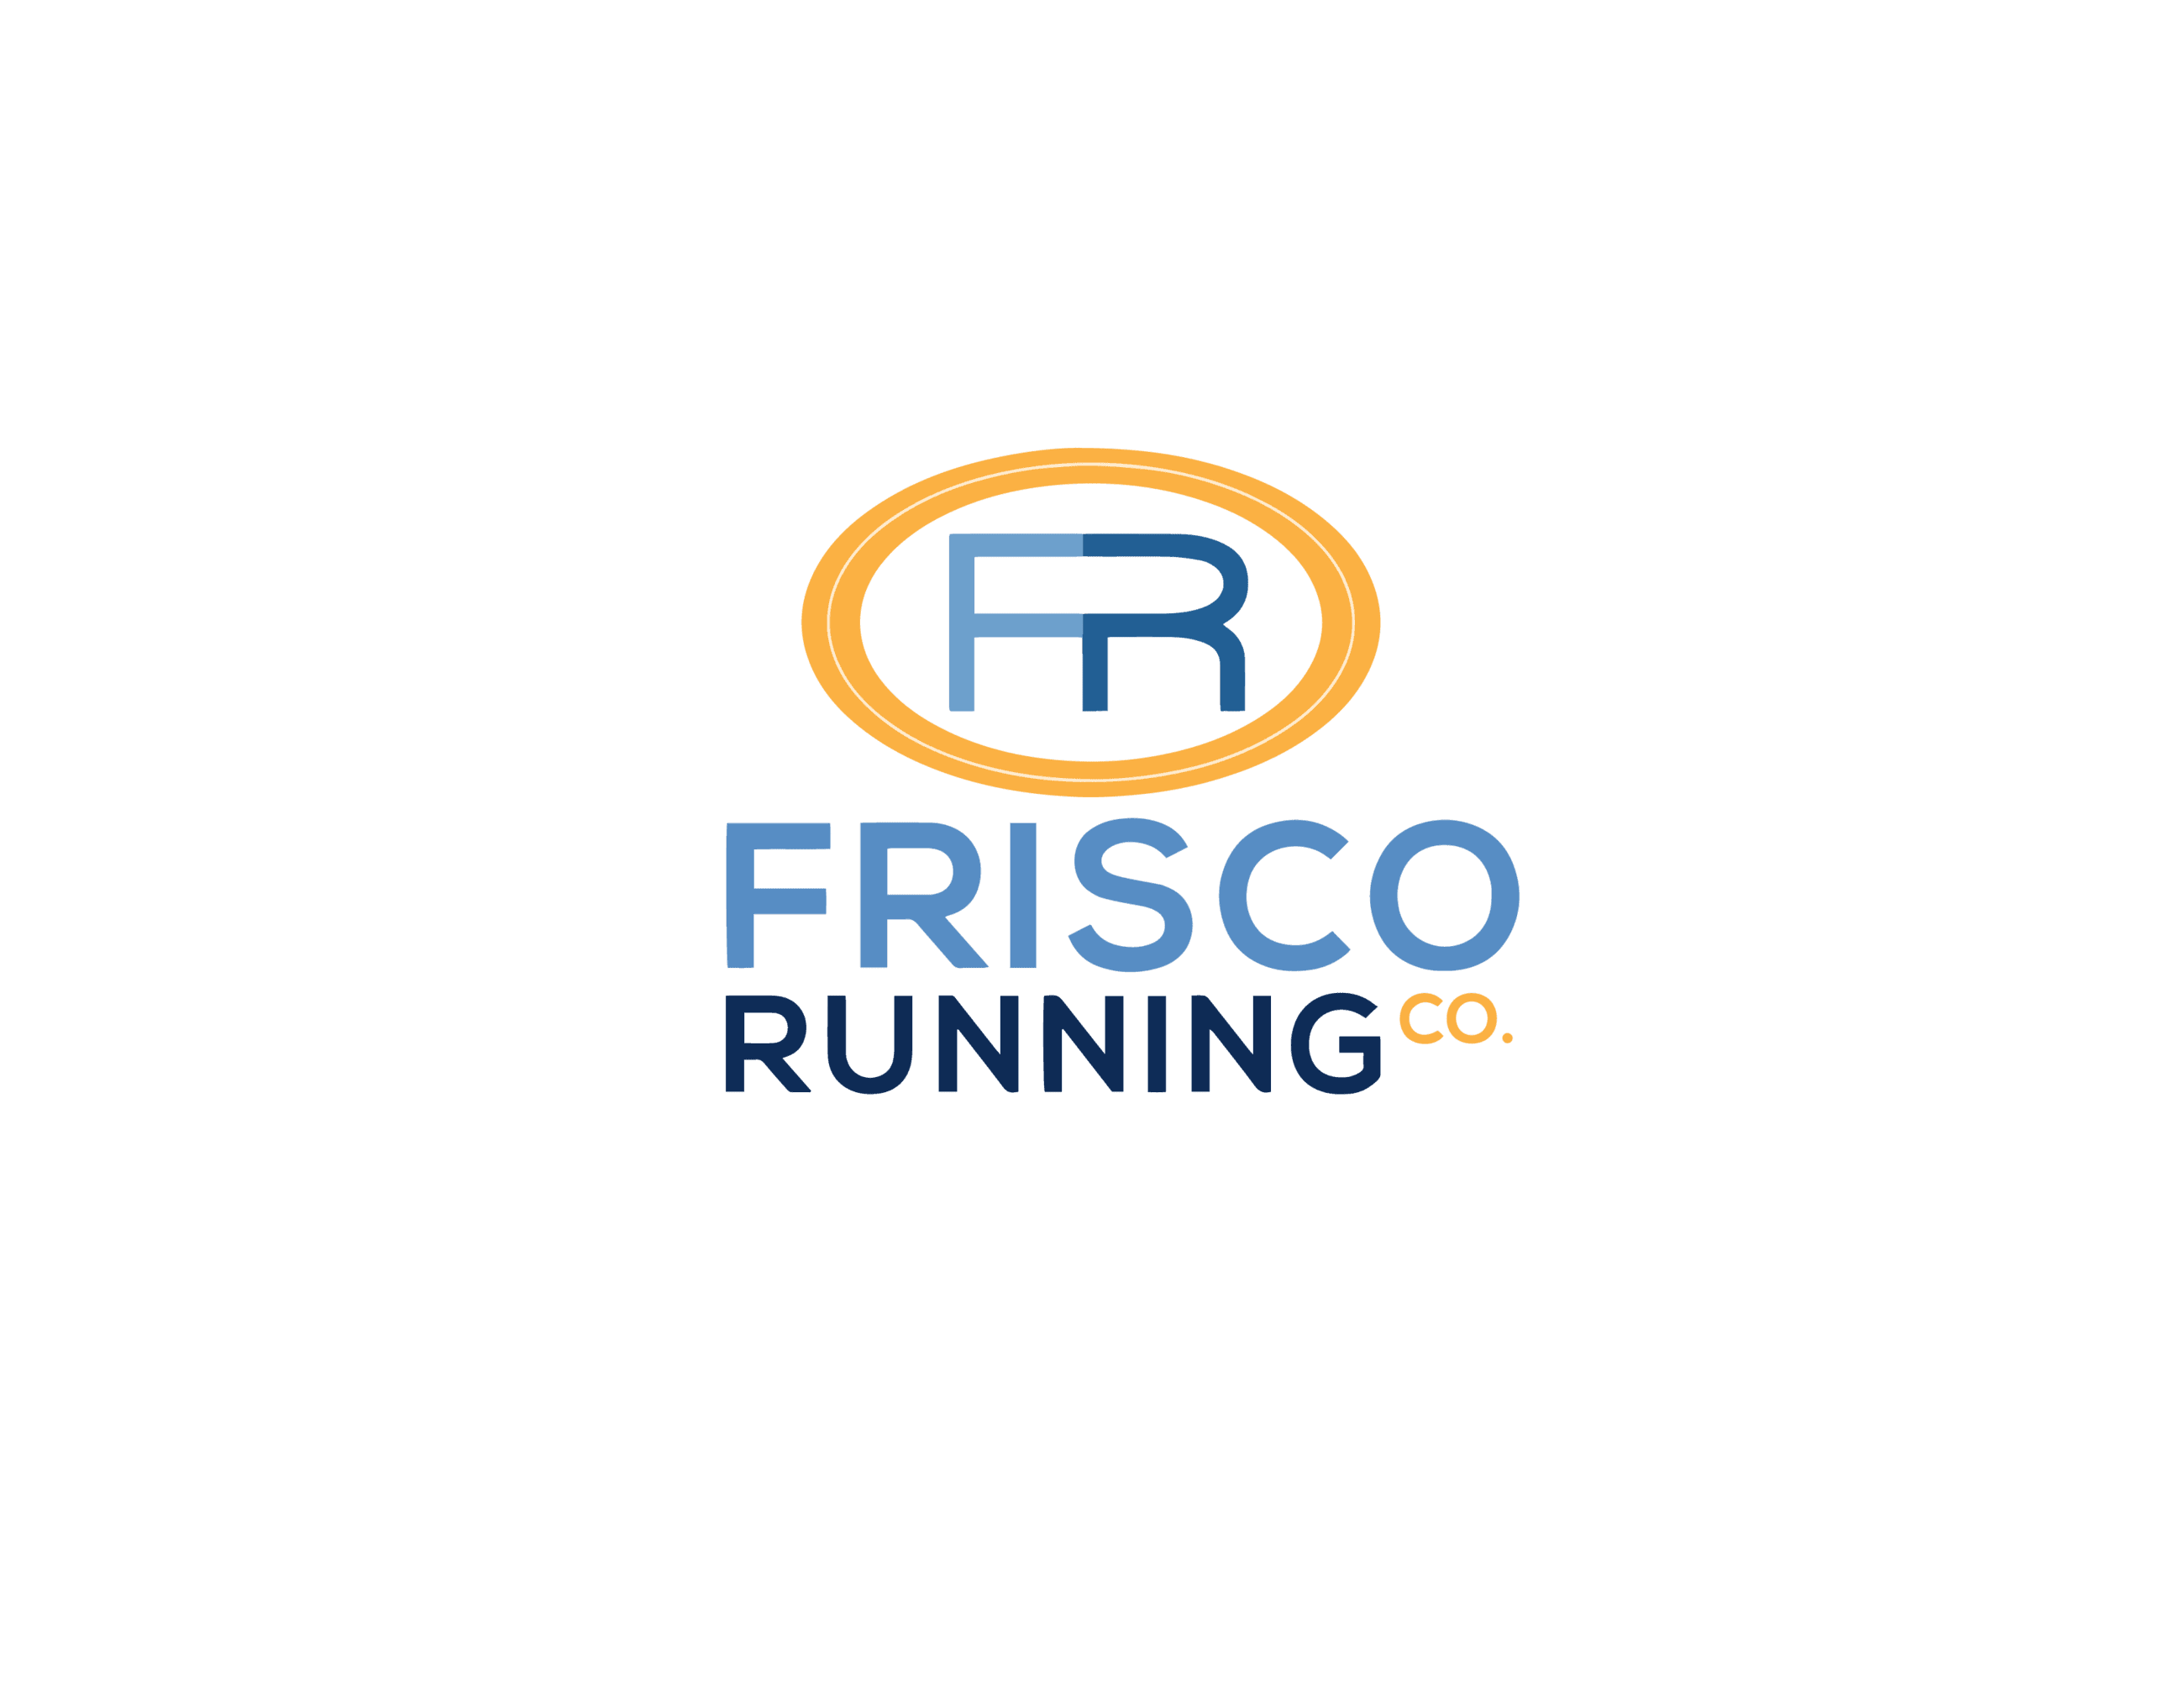 Frisco Running Company